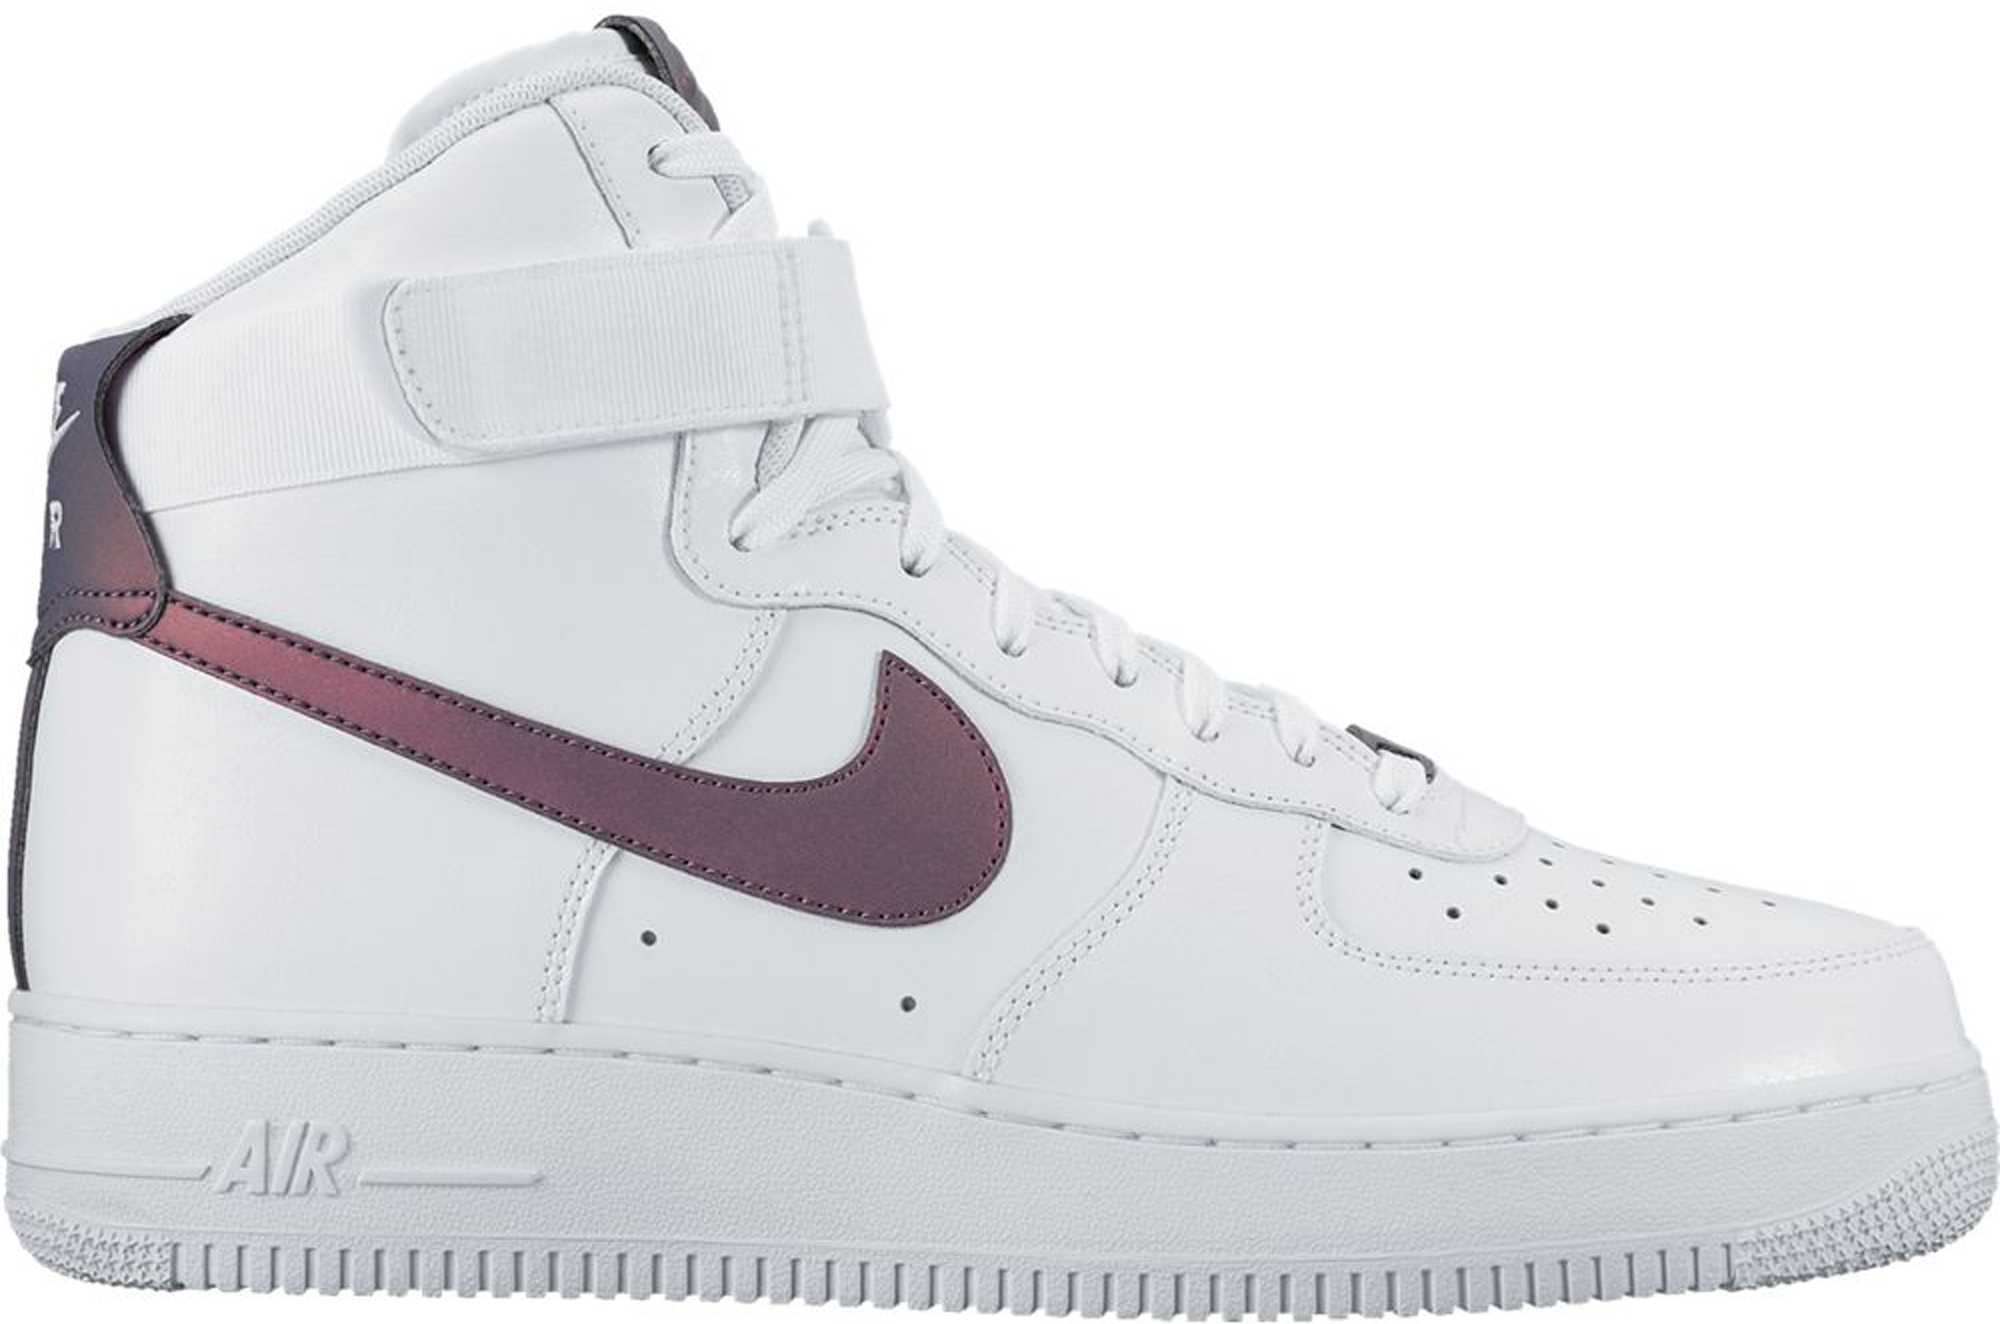 Nike Air Force 1 High White Multi-Color